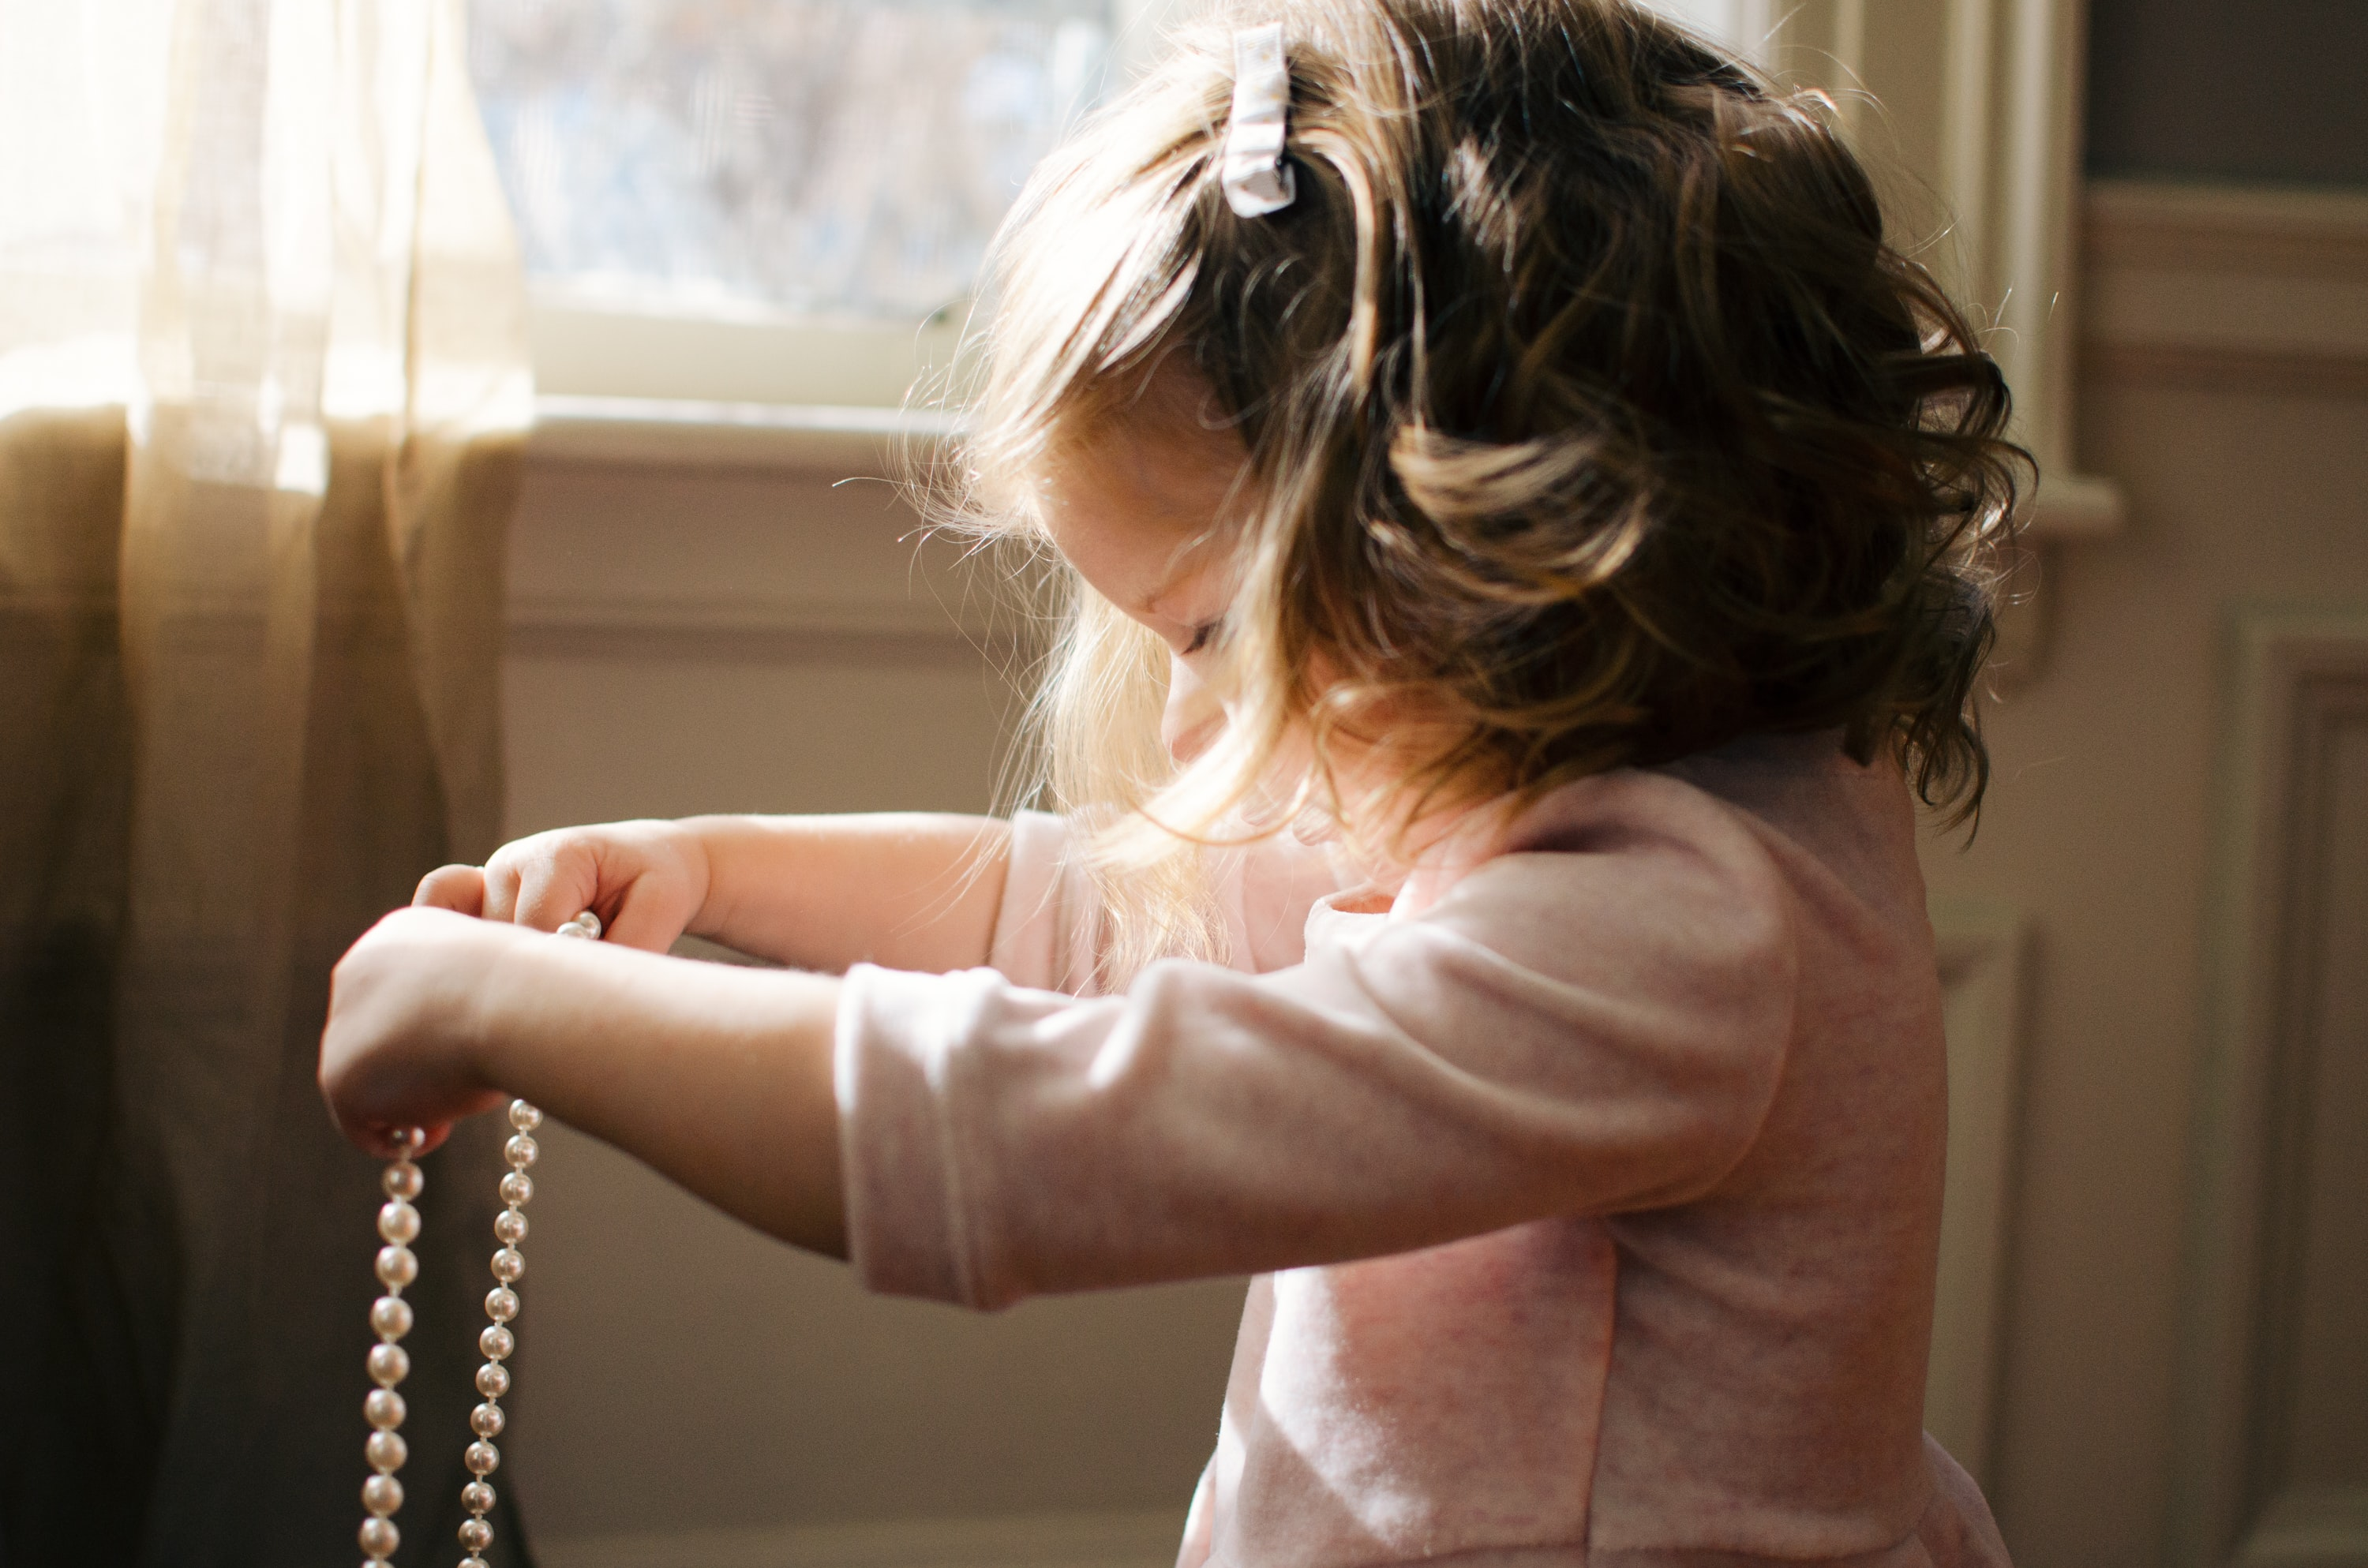 Young girl with a pink shirt holder her mother's pearl necklace